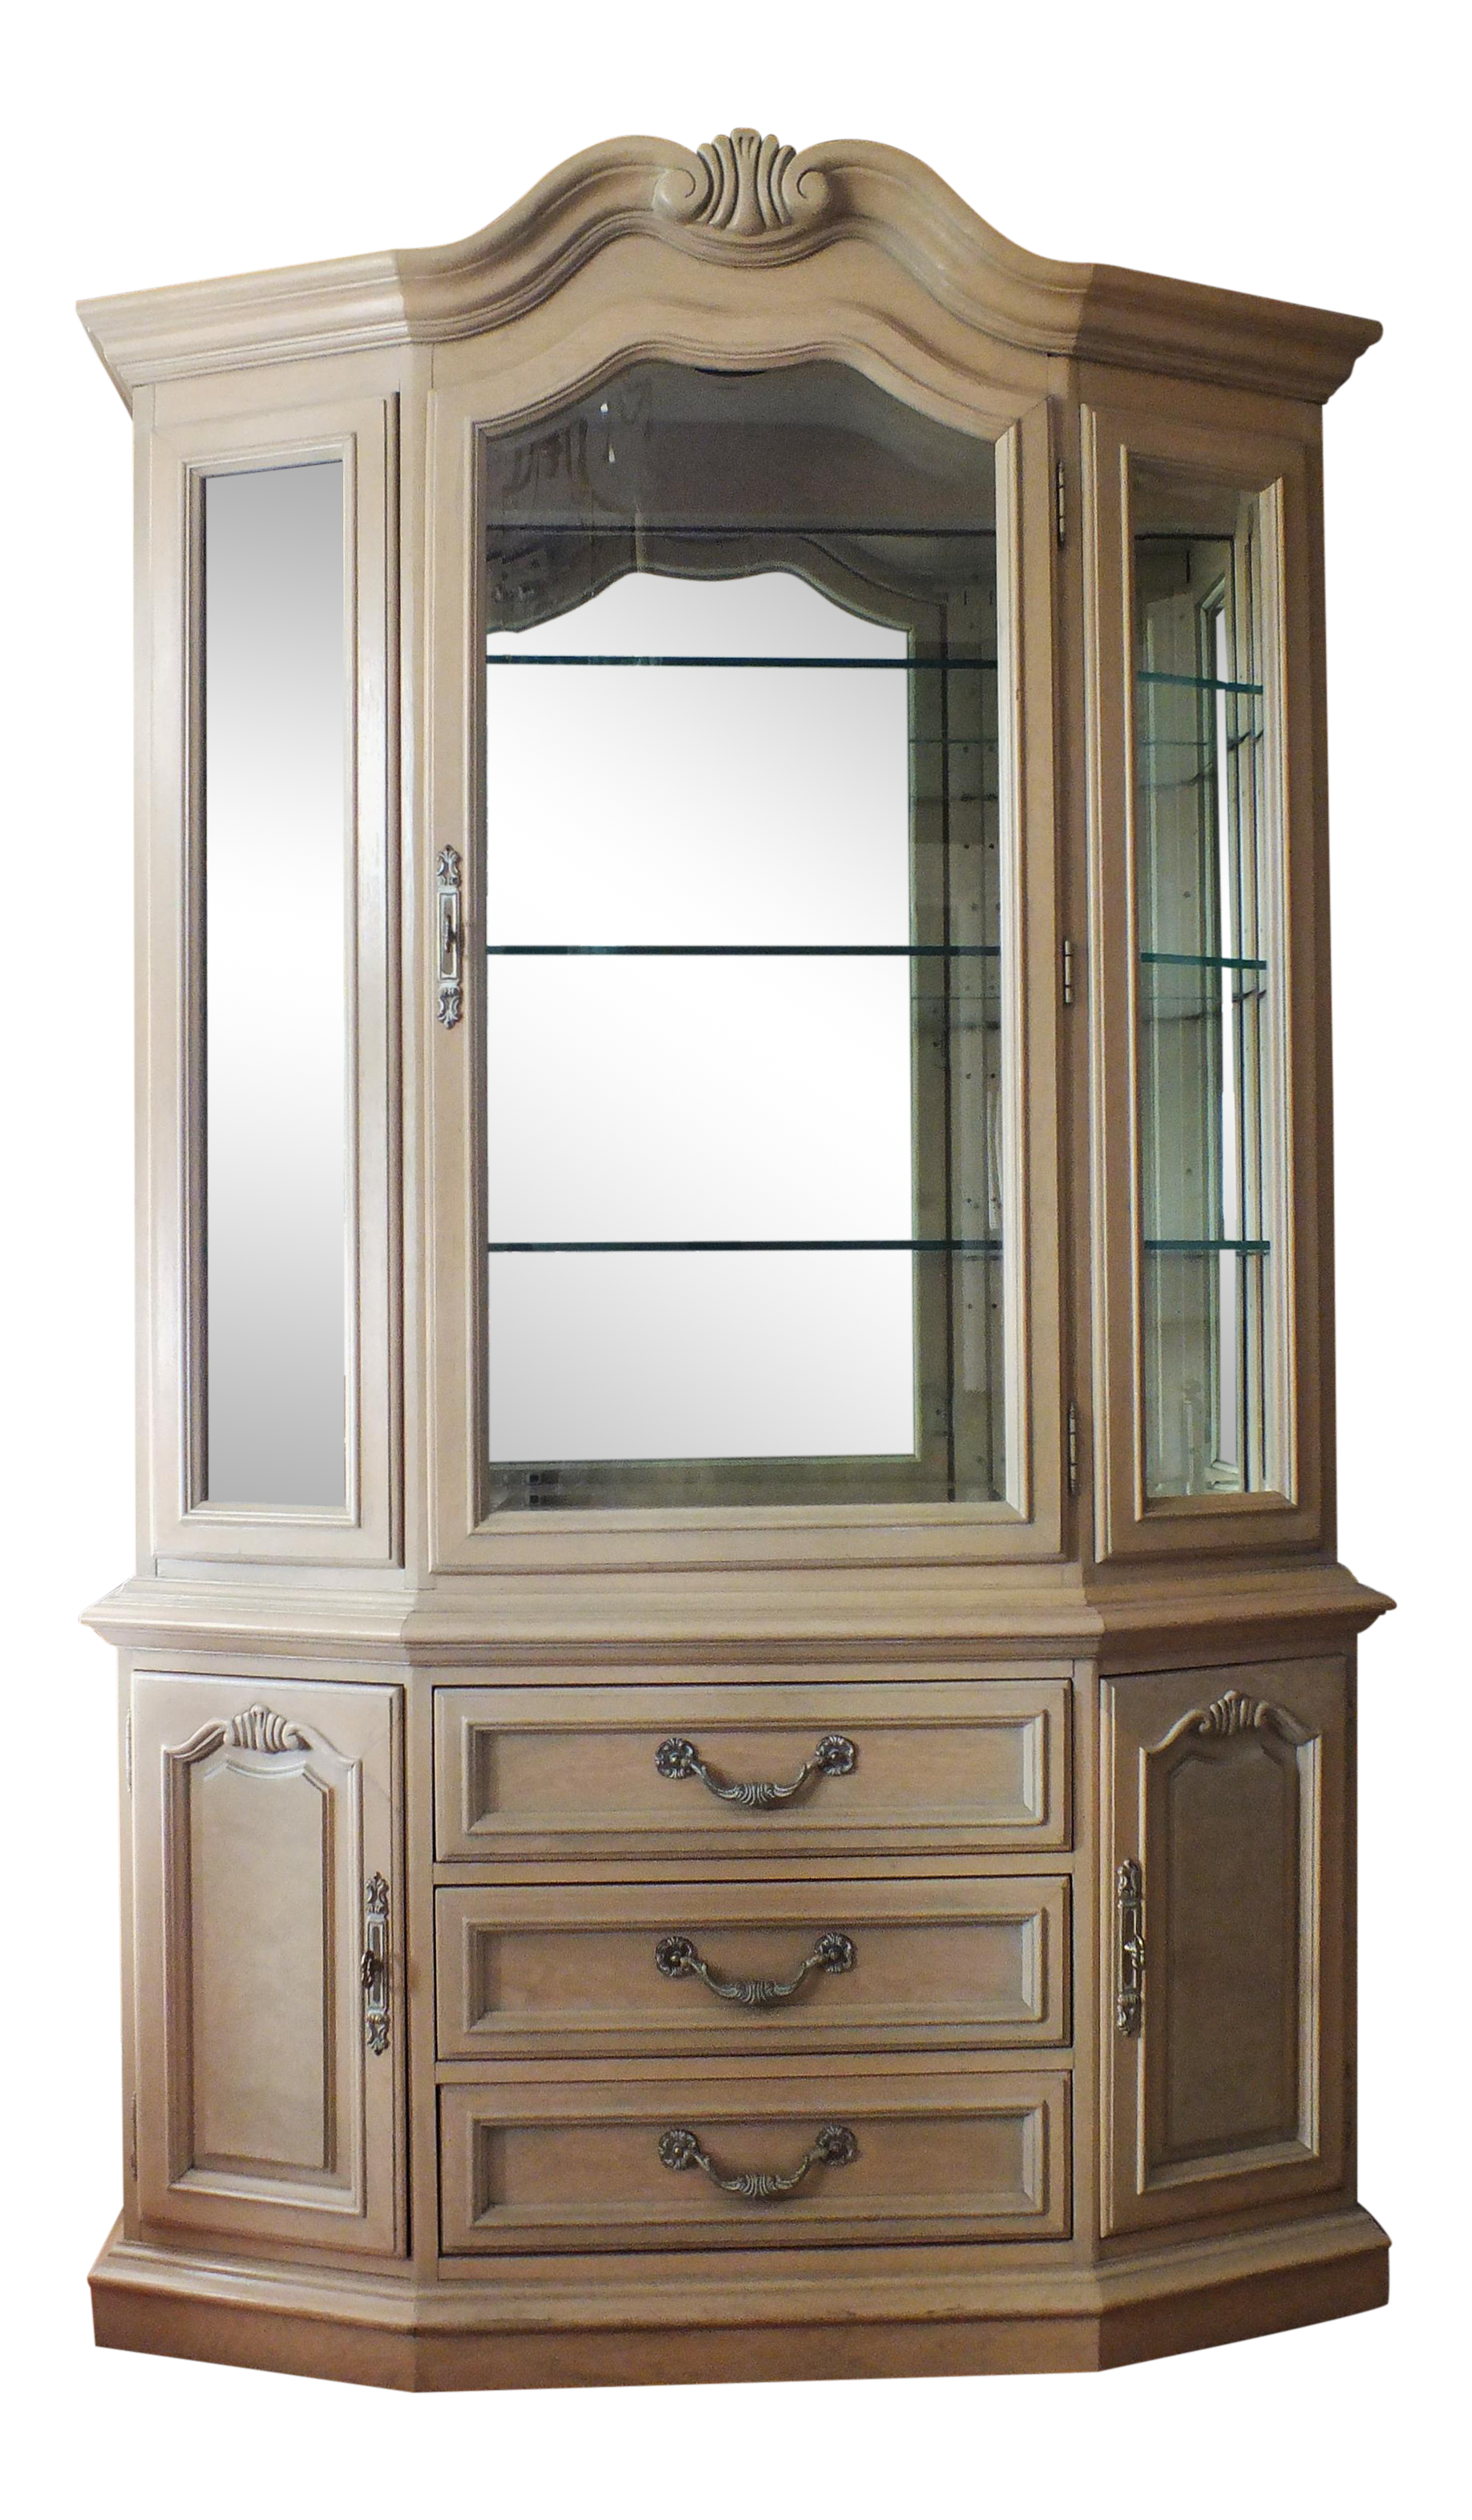 French country china cabinets - French Country China Cabinets 9